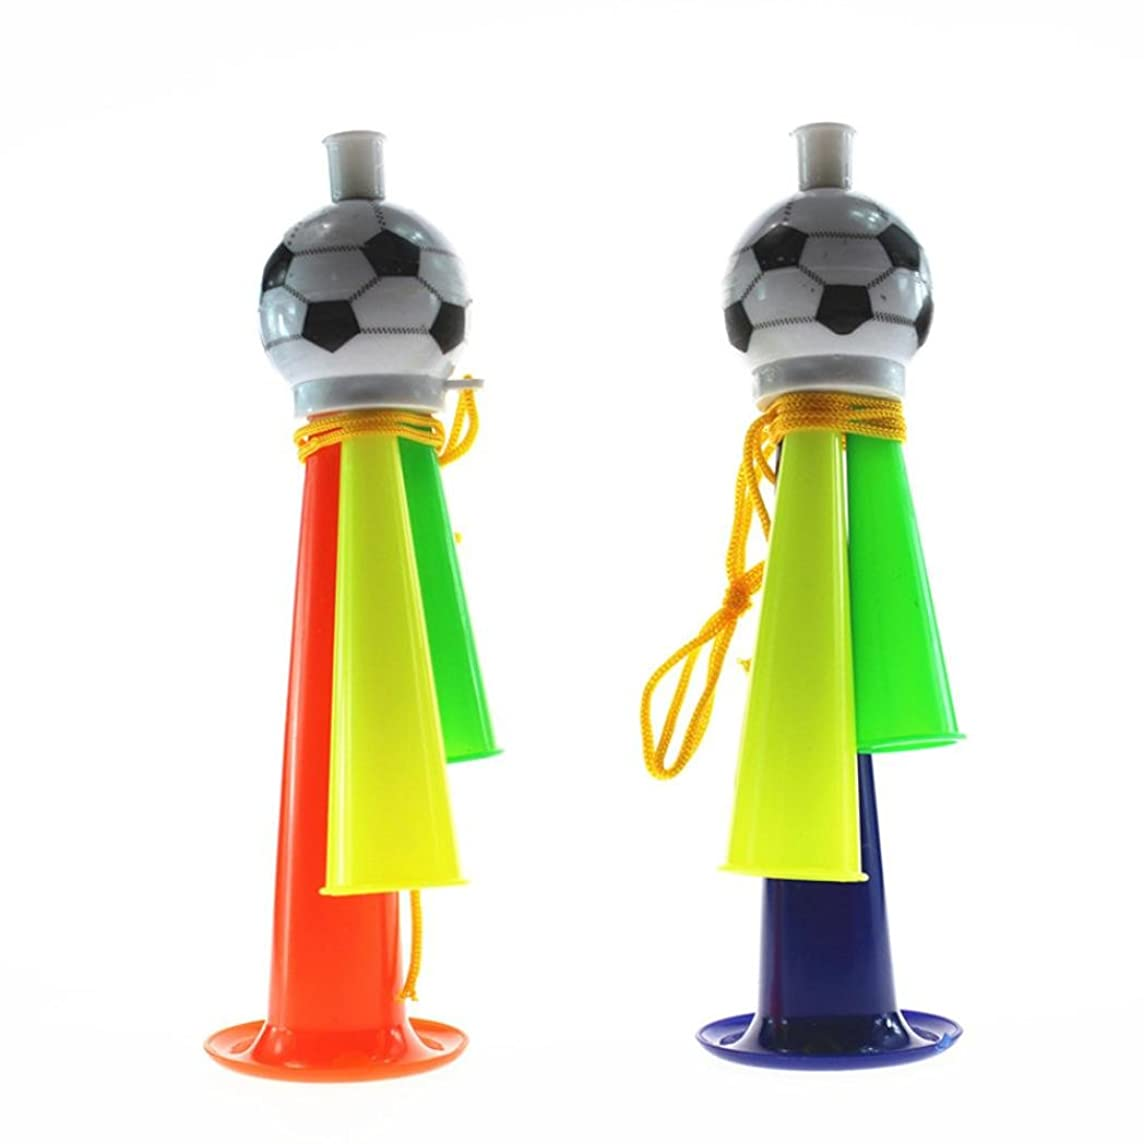 Gbell 22CM/19CM/3.5CM Game Cheer Football Horn Toy, Adults,Boys,Girls Hooter Trumpet Instruments Music Toys for 2018 World Cup (A)